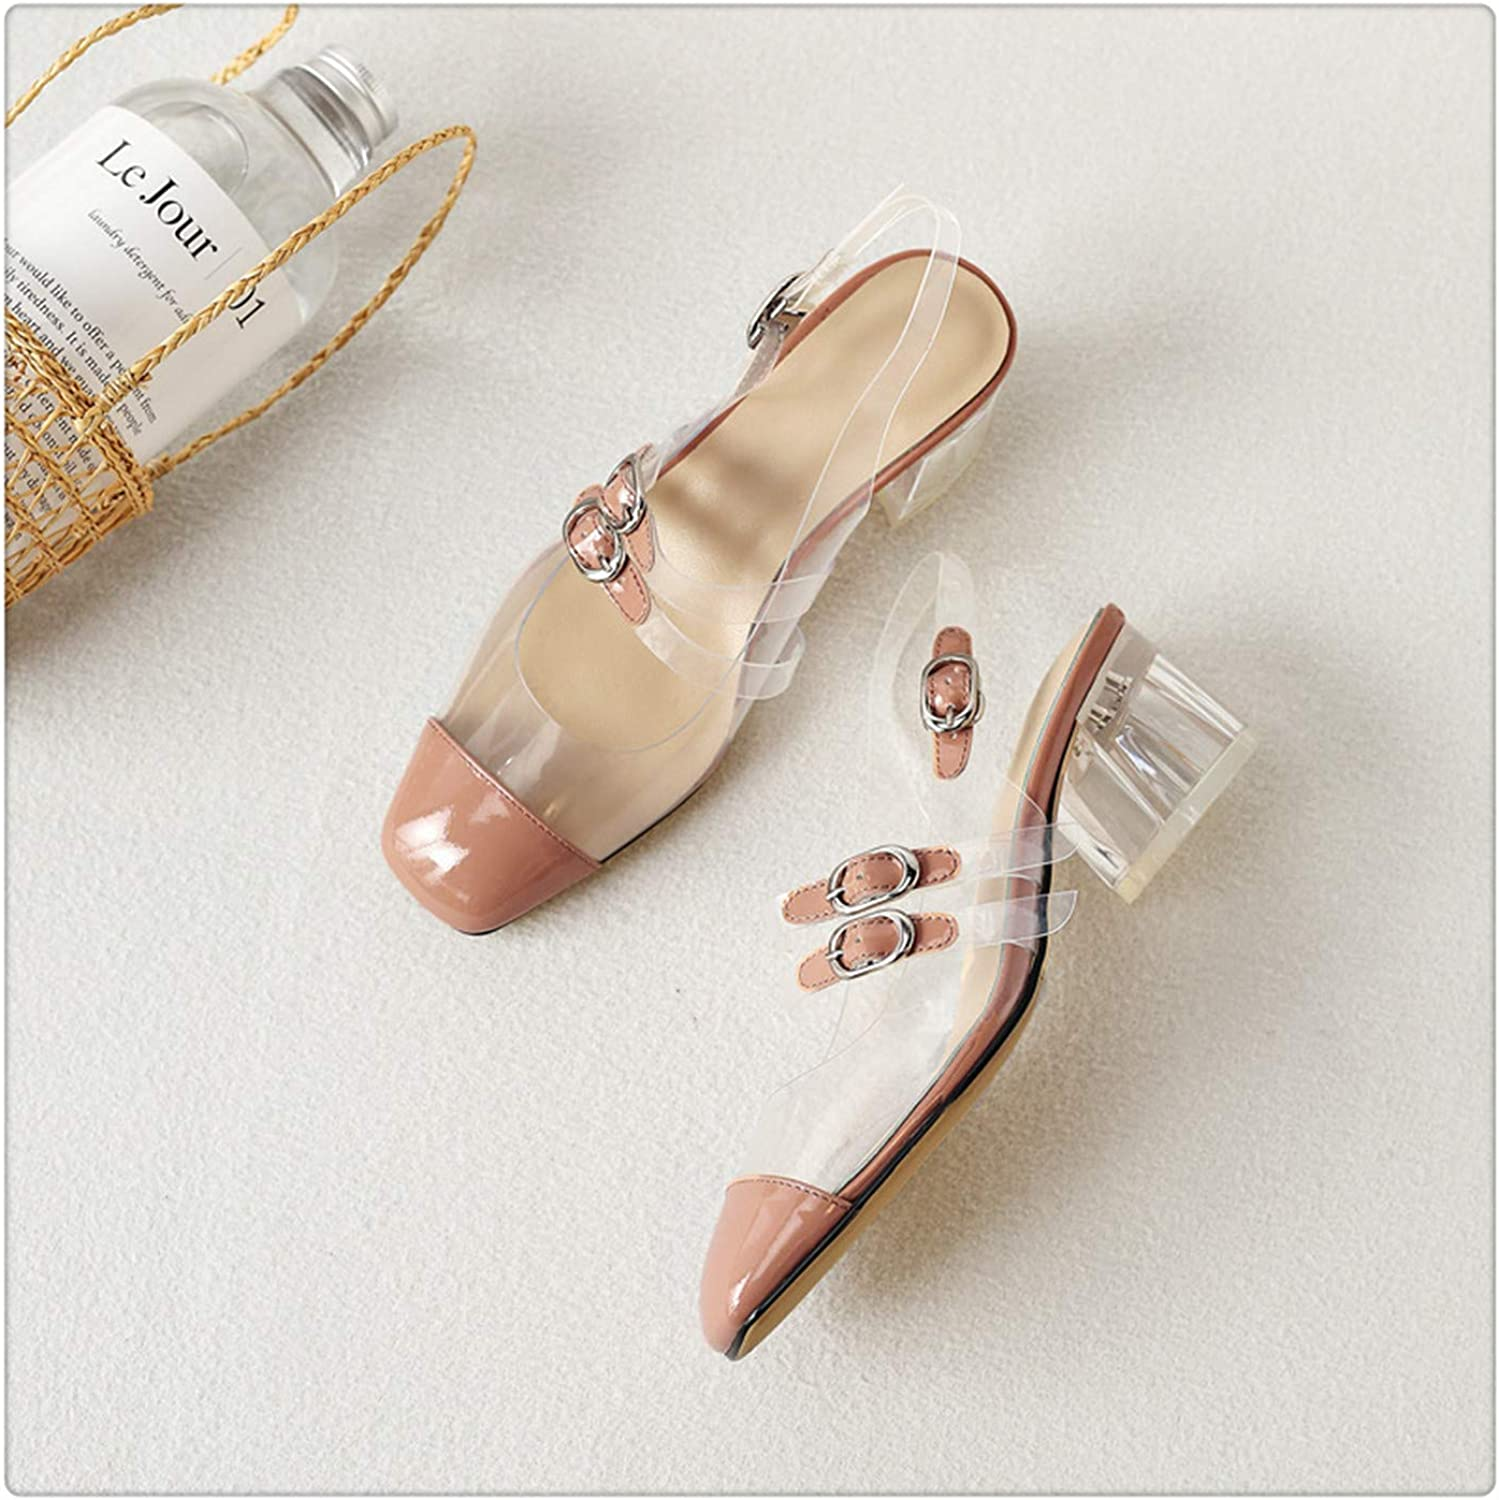 HROST& Square Toe Patent Leather Buckle Strap Mixed colorsHigh Heels Sandals Women Tide